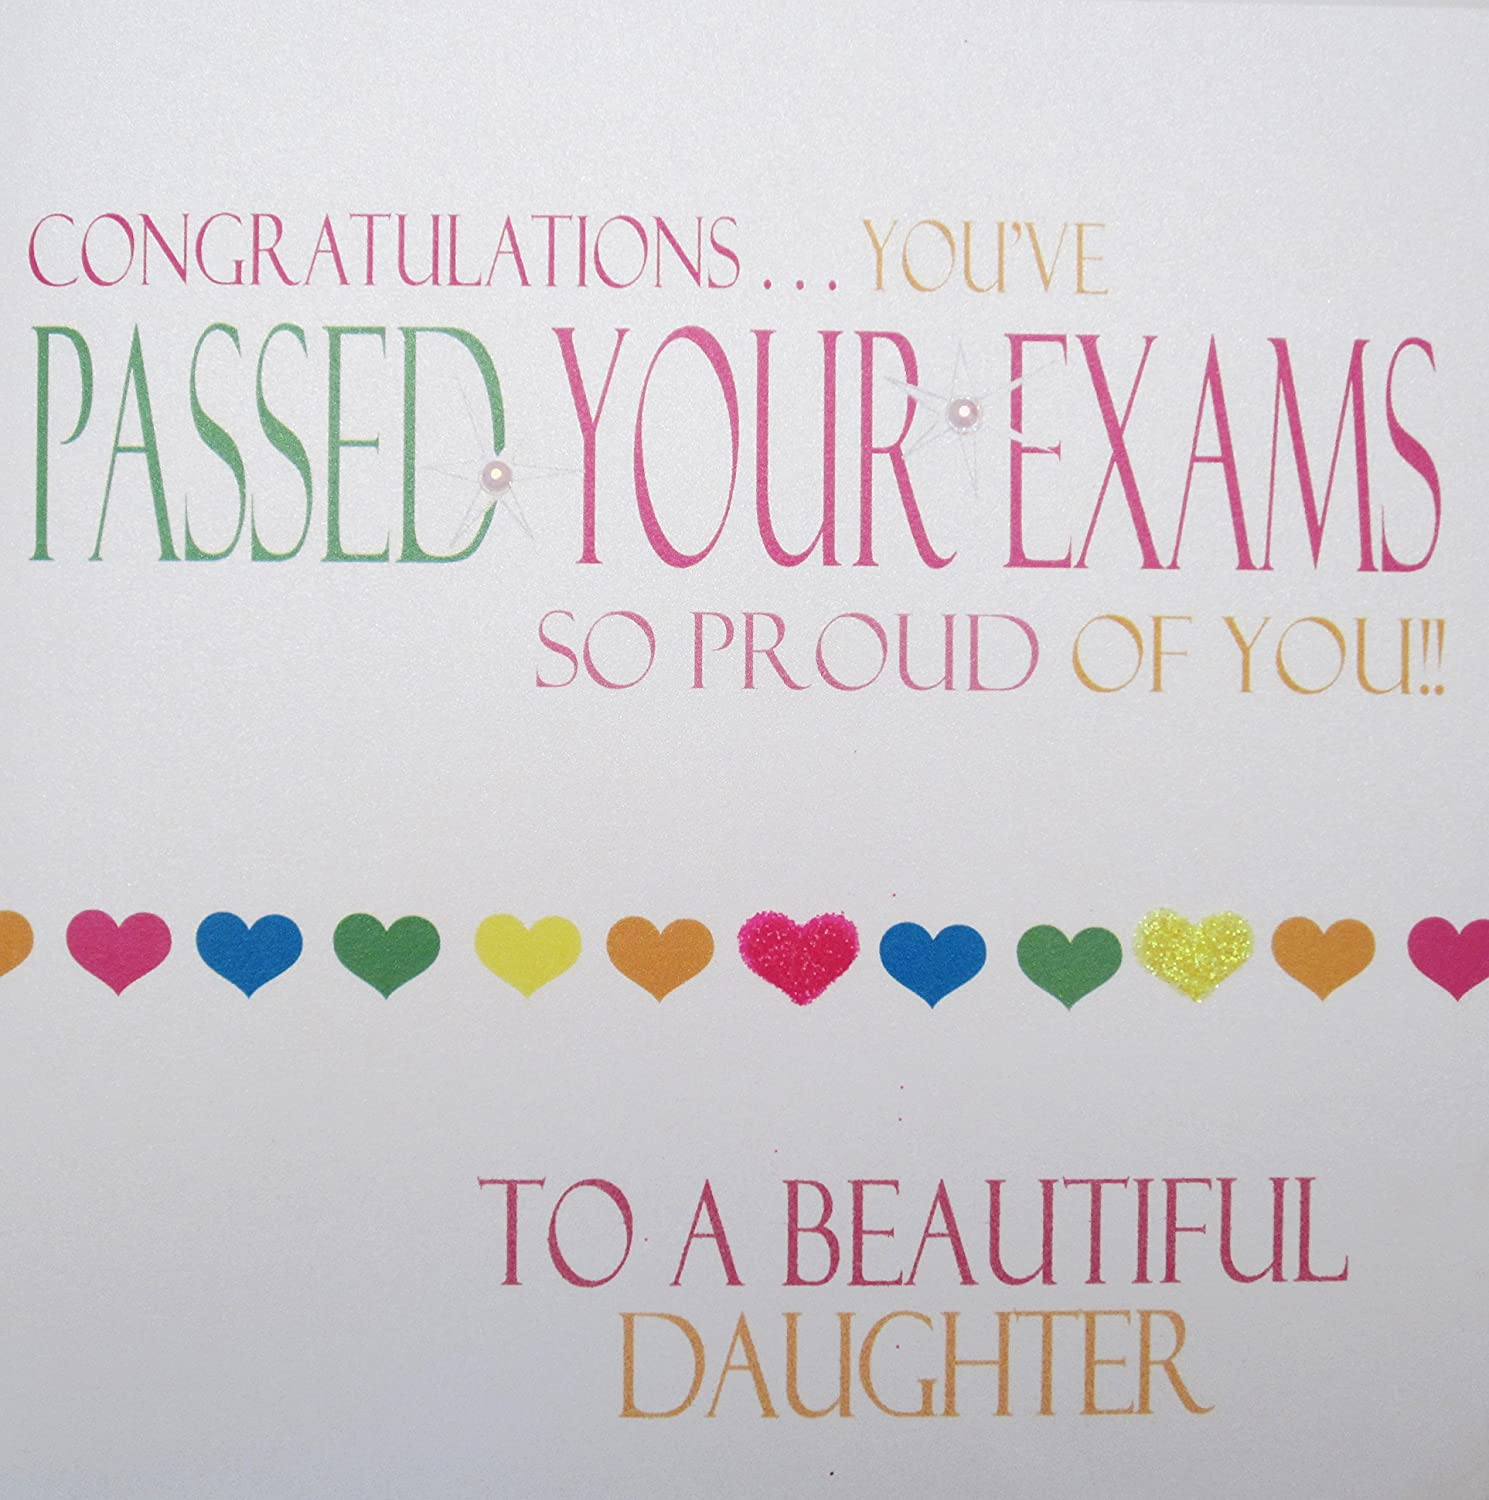 White cotton cards n8 d neon range passed exams congratulations you white cotton cards n8 d neon range passed exams congratulations youve passed your exams so proud of youto a beautiful daughter handmade card m4hsunfo